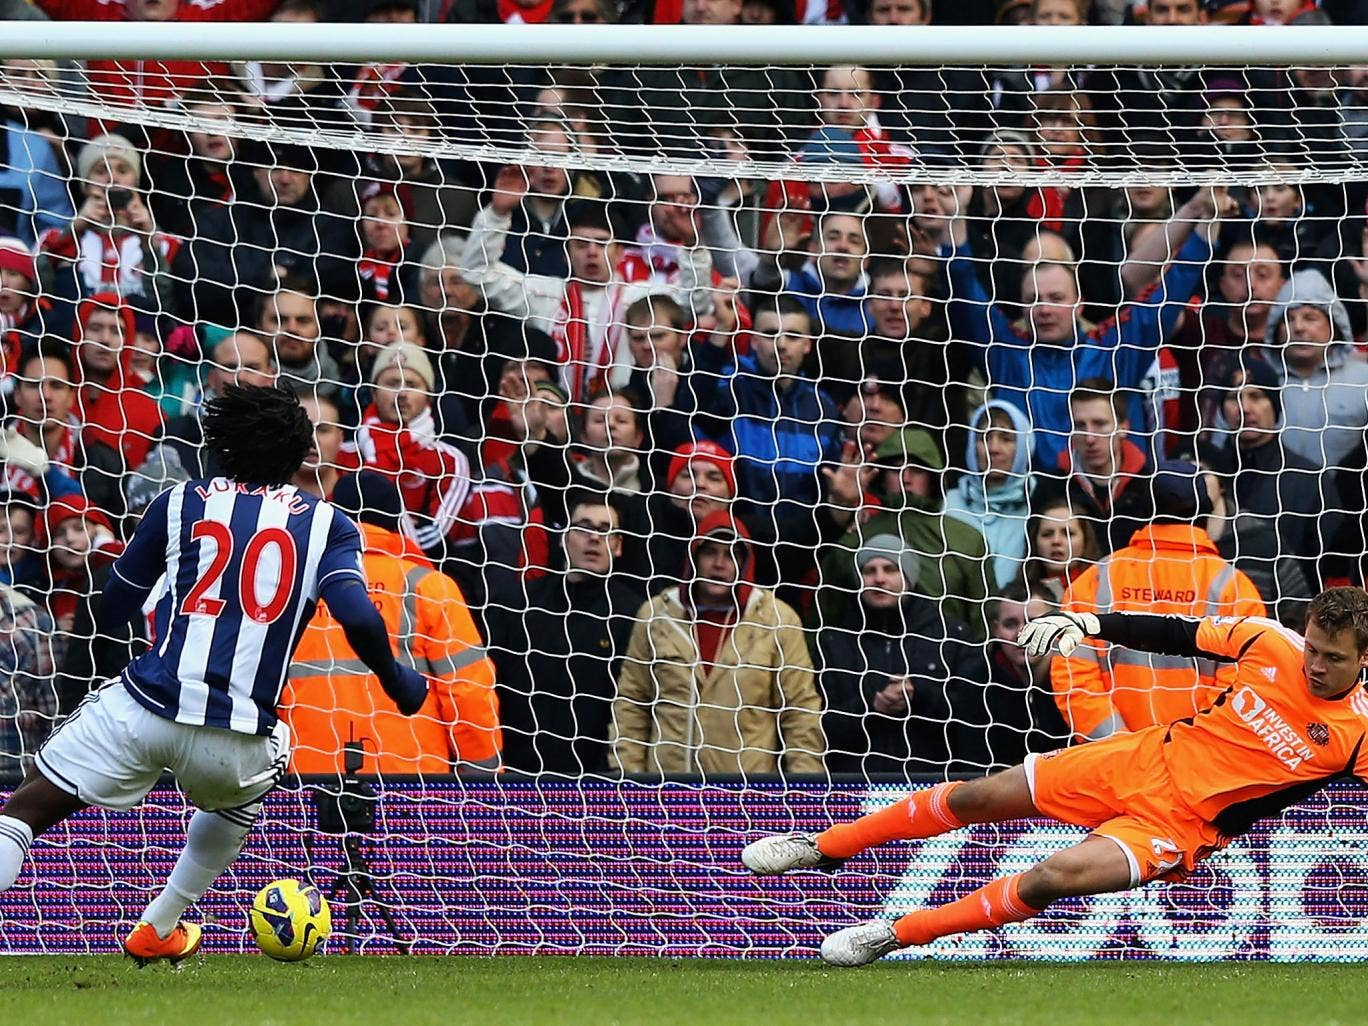 Romelu Lukaku slots home a penalty from West Brom